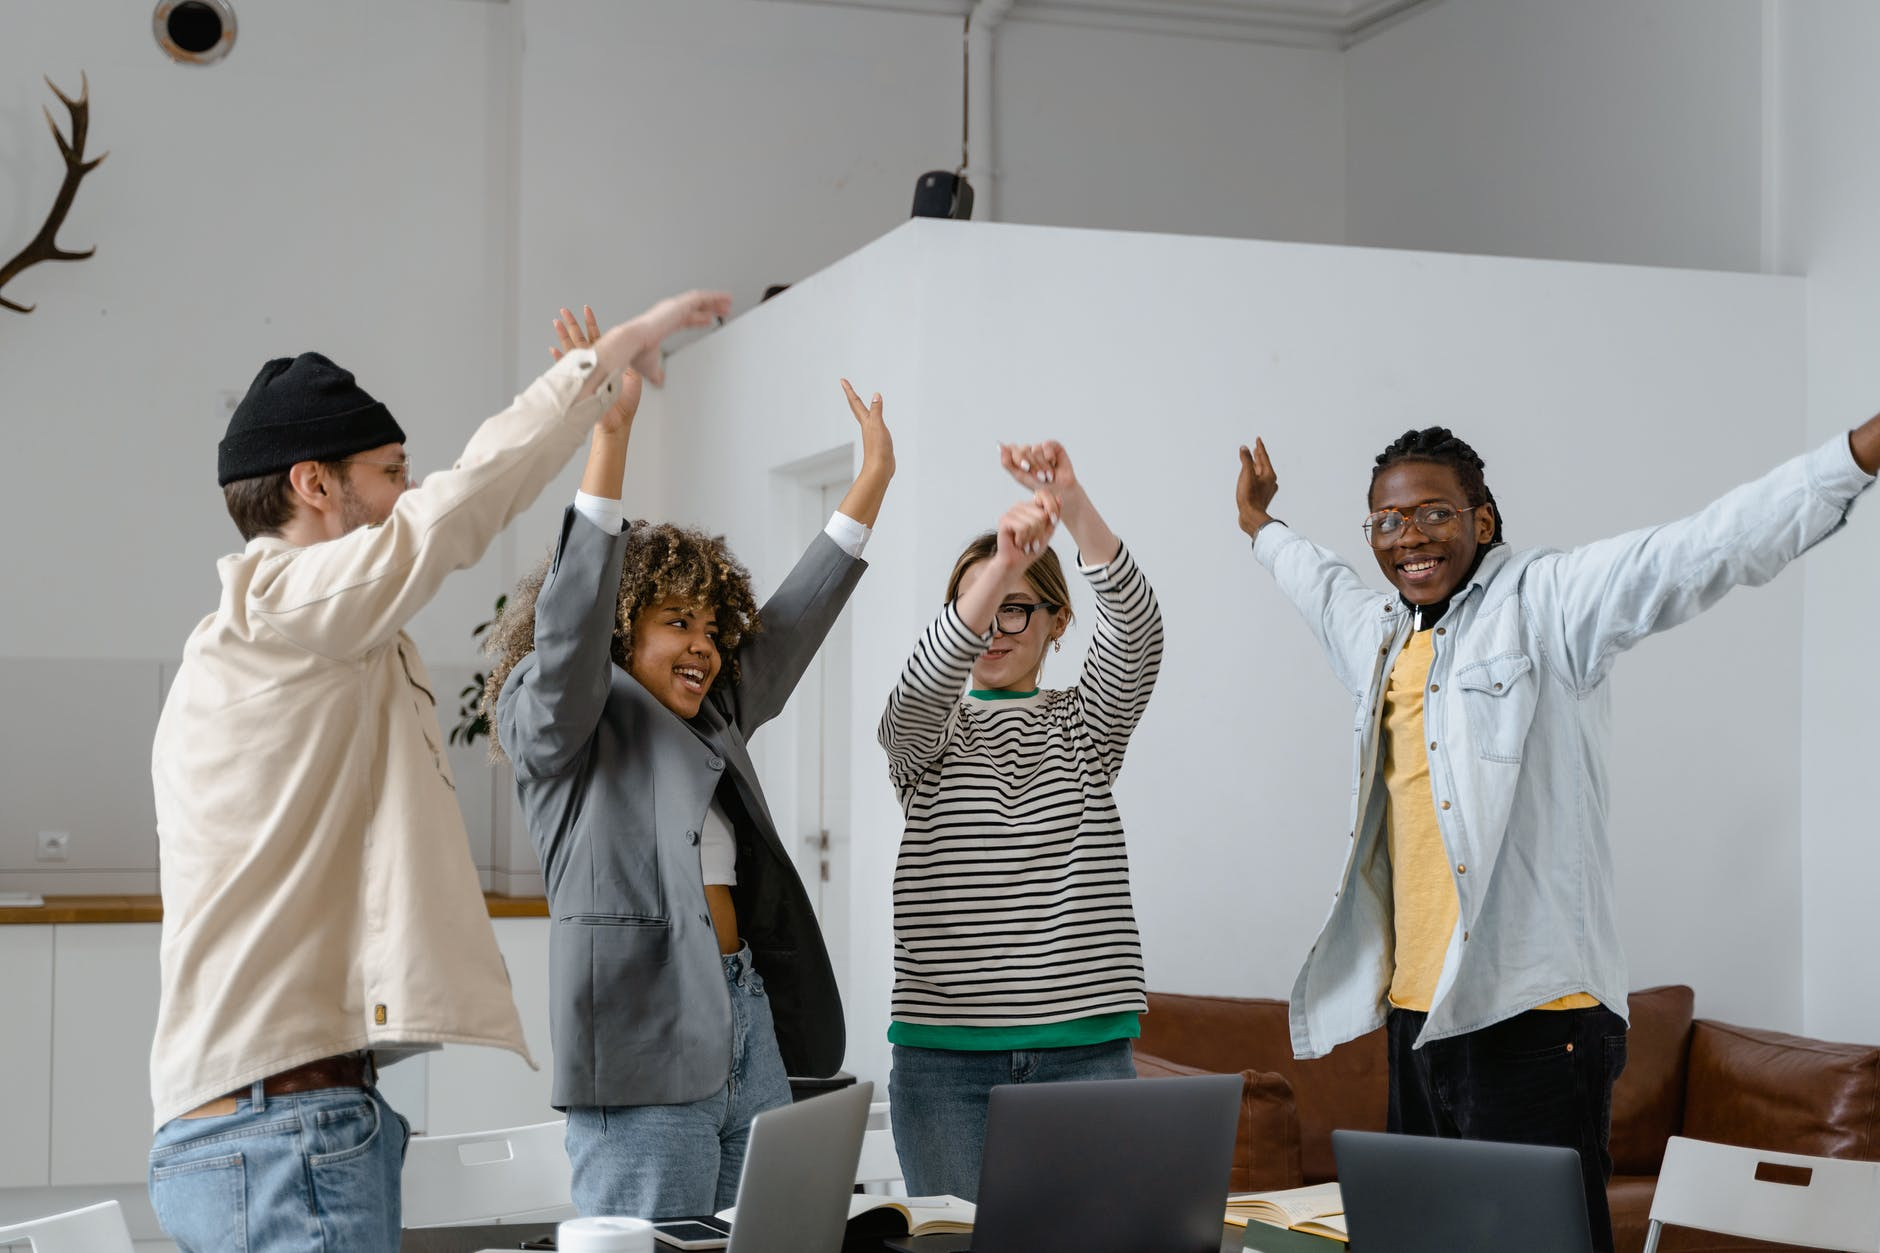 group of interracial people rejoicing with hands raised